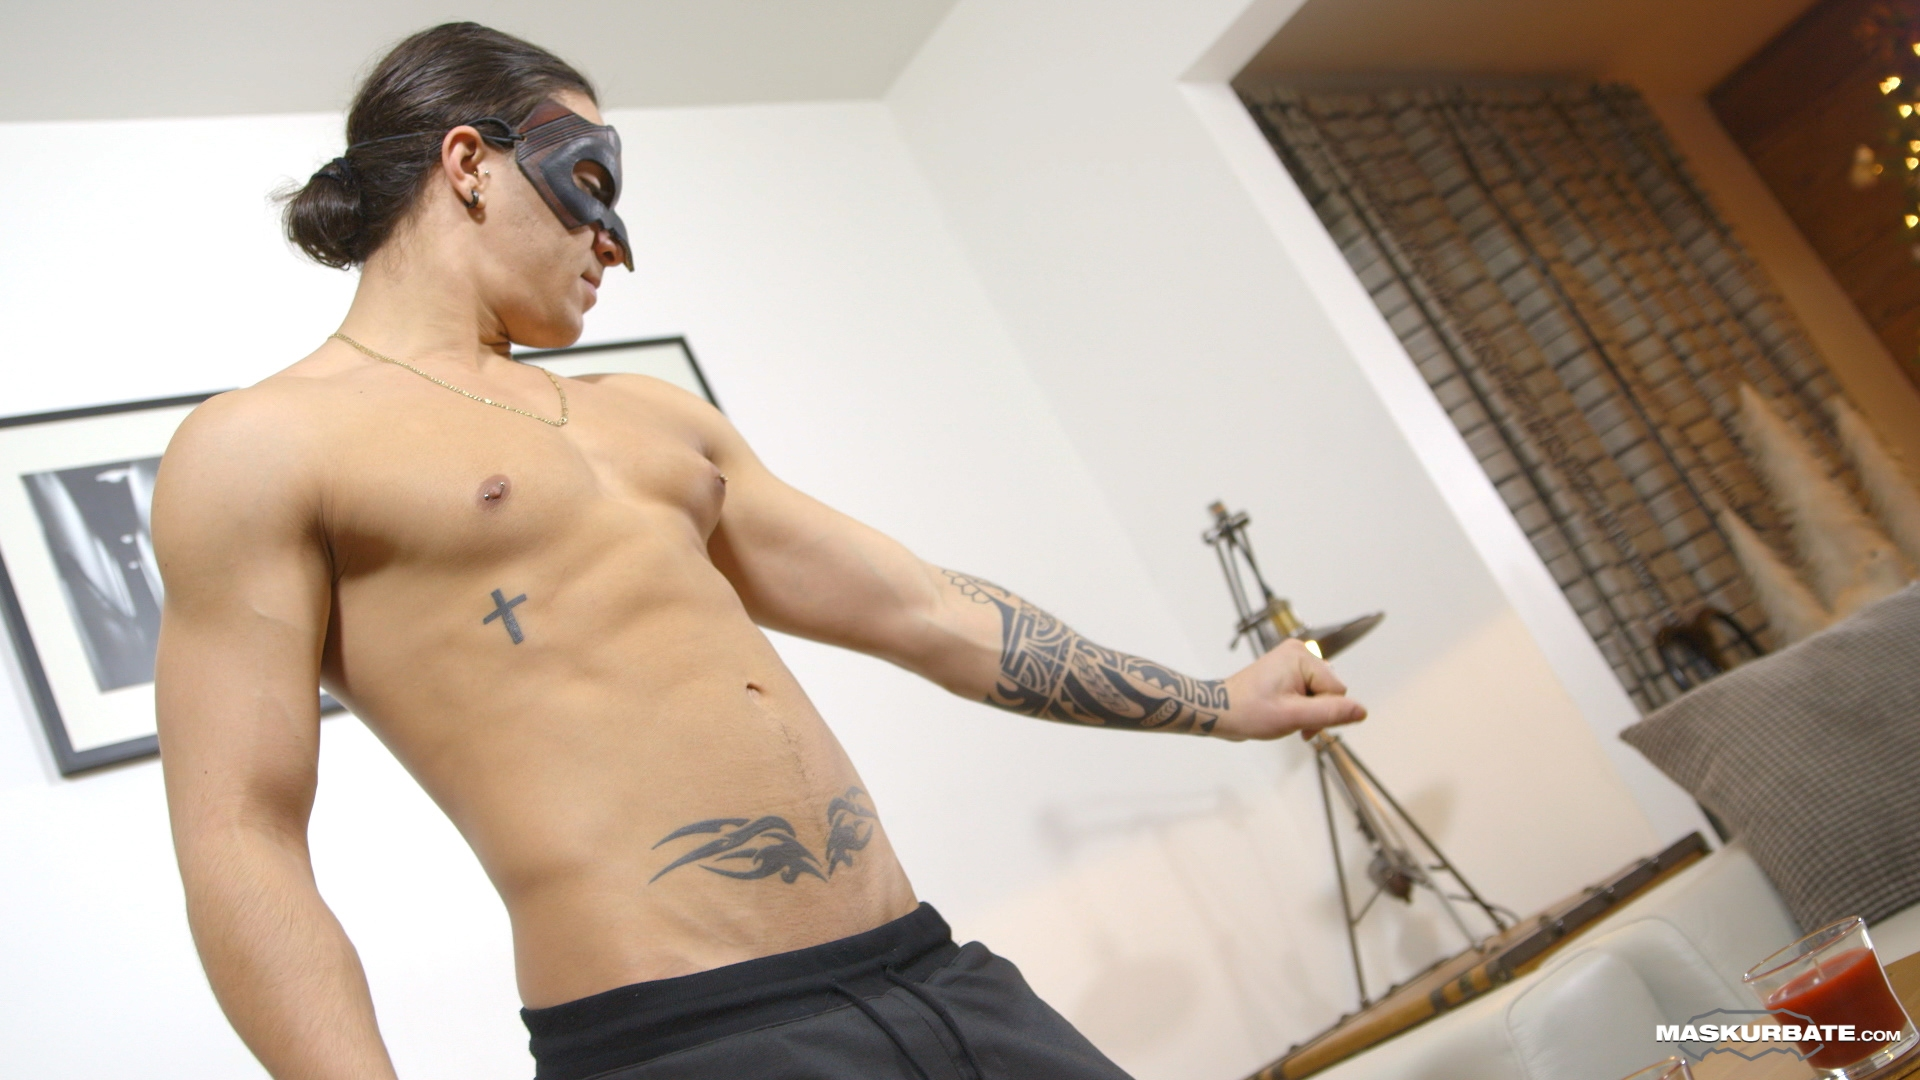 Young Kosta (a 21 excellence old) came to Maskurbate expecting his first porn shoot to be difficult plus intimidating. After a short make understandable Pascal, our newcomer felt relaxed enough to strip plus show us his tattoos. Kosta goes to the gym regu